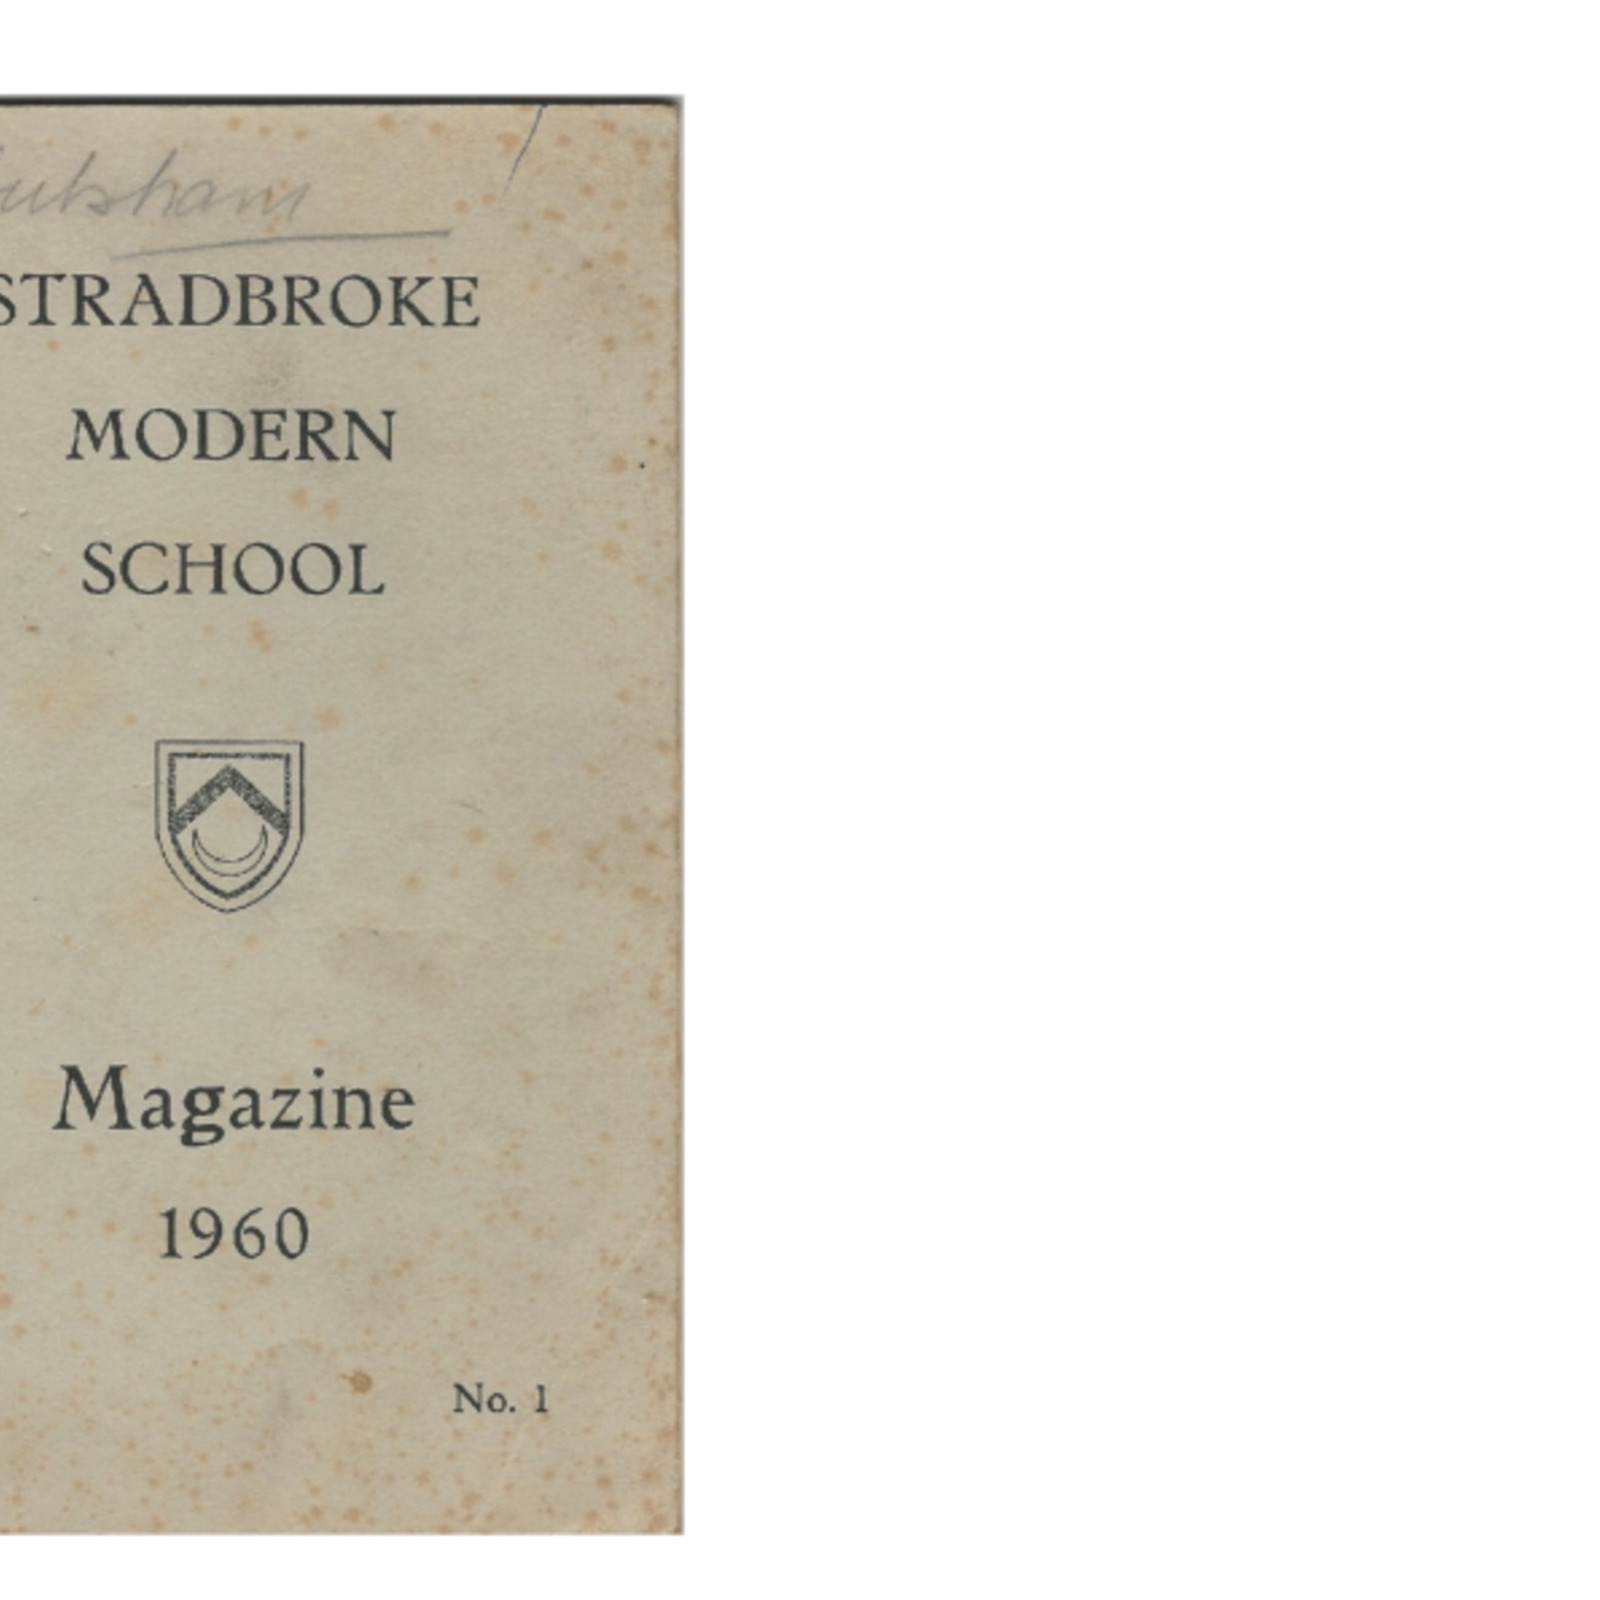 STRADBROKE HIGH SCHOOL MAG 1960 PART ONE.pdf